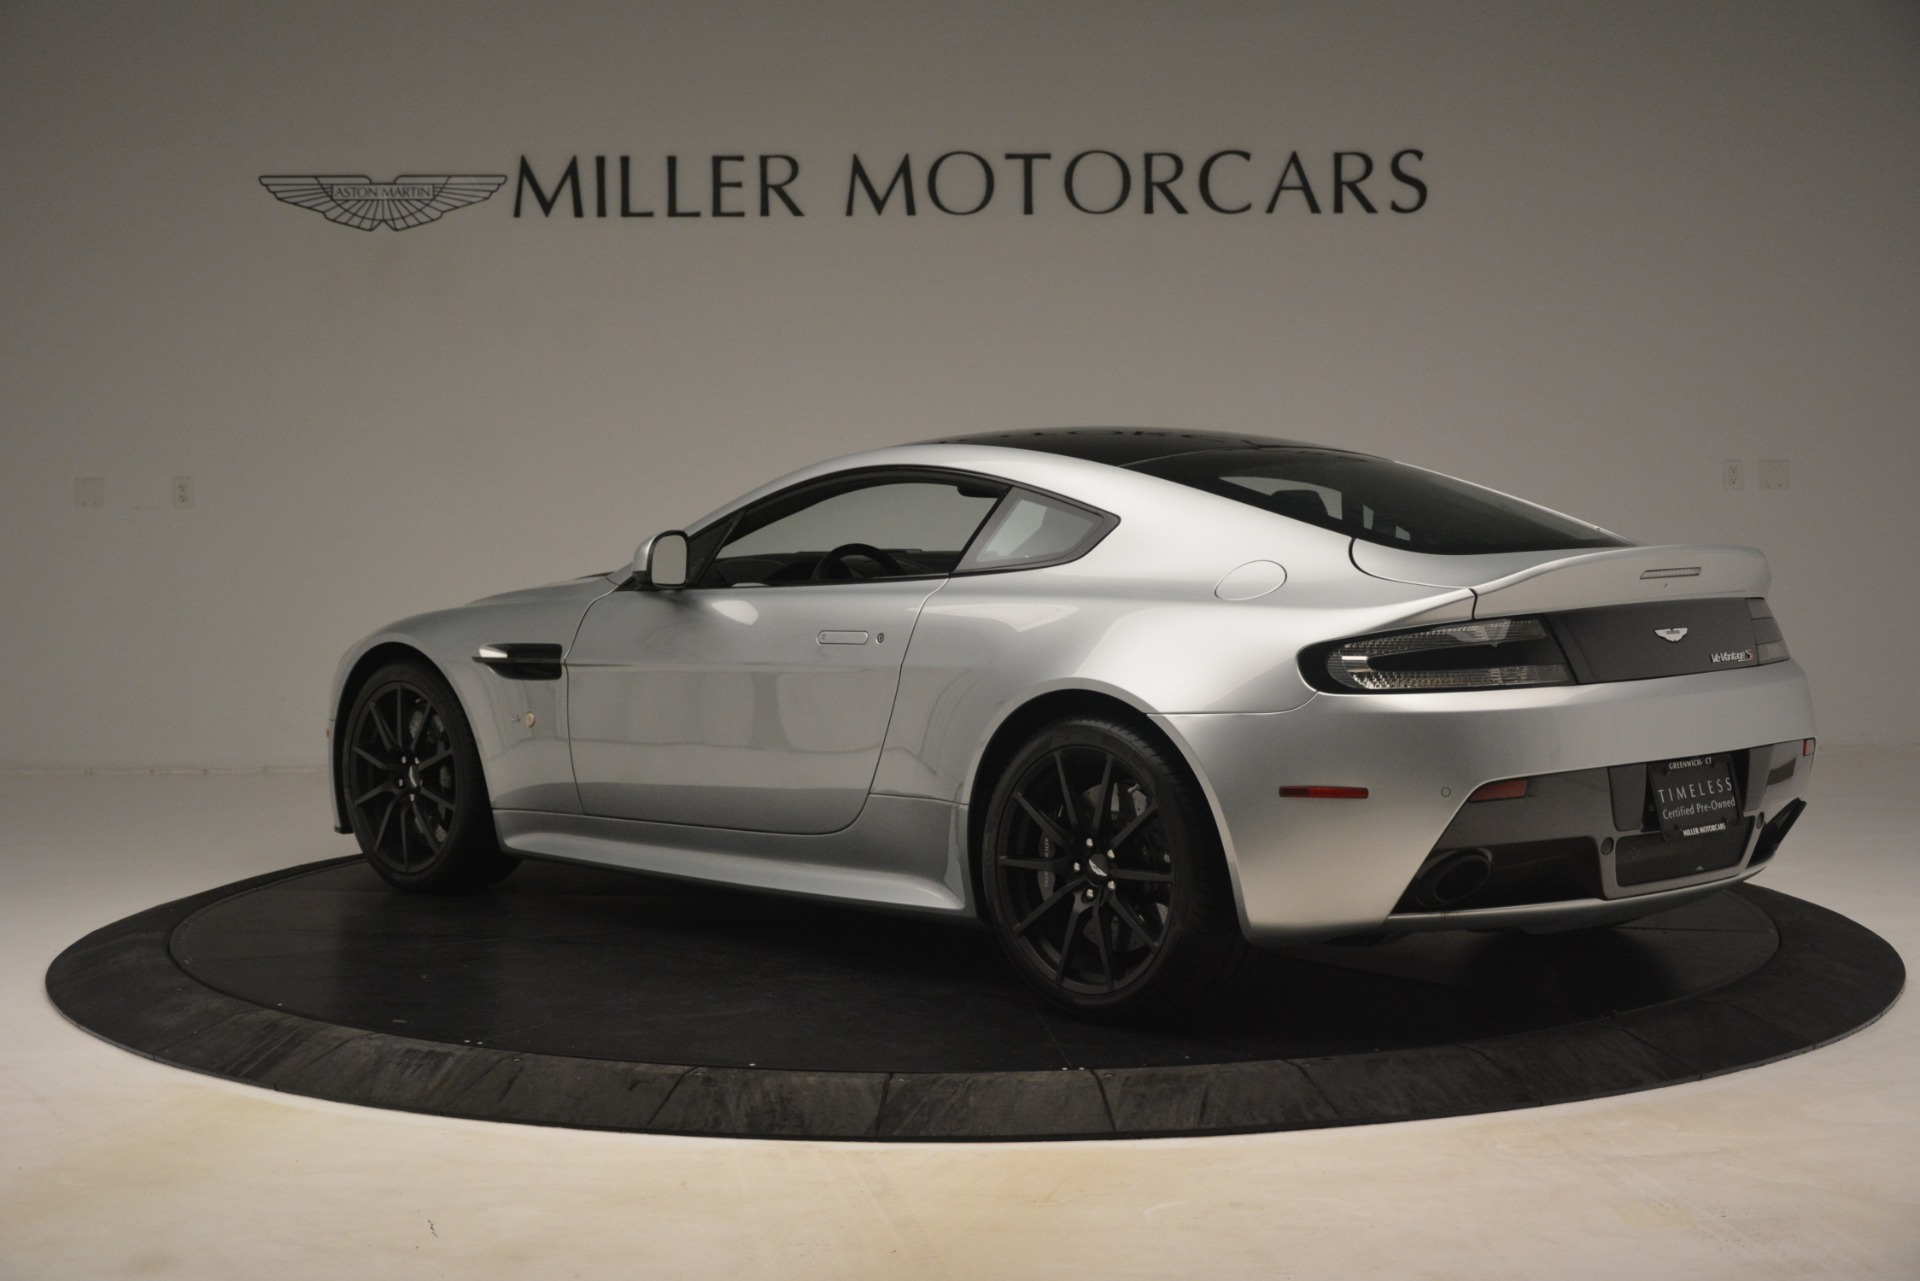 Used 2015 Aston Martin V12 Vantage S Coupe For Sale In Greenwich, CT 3206_p4